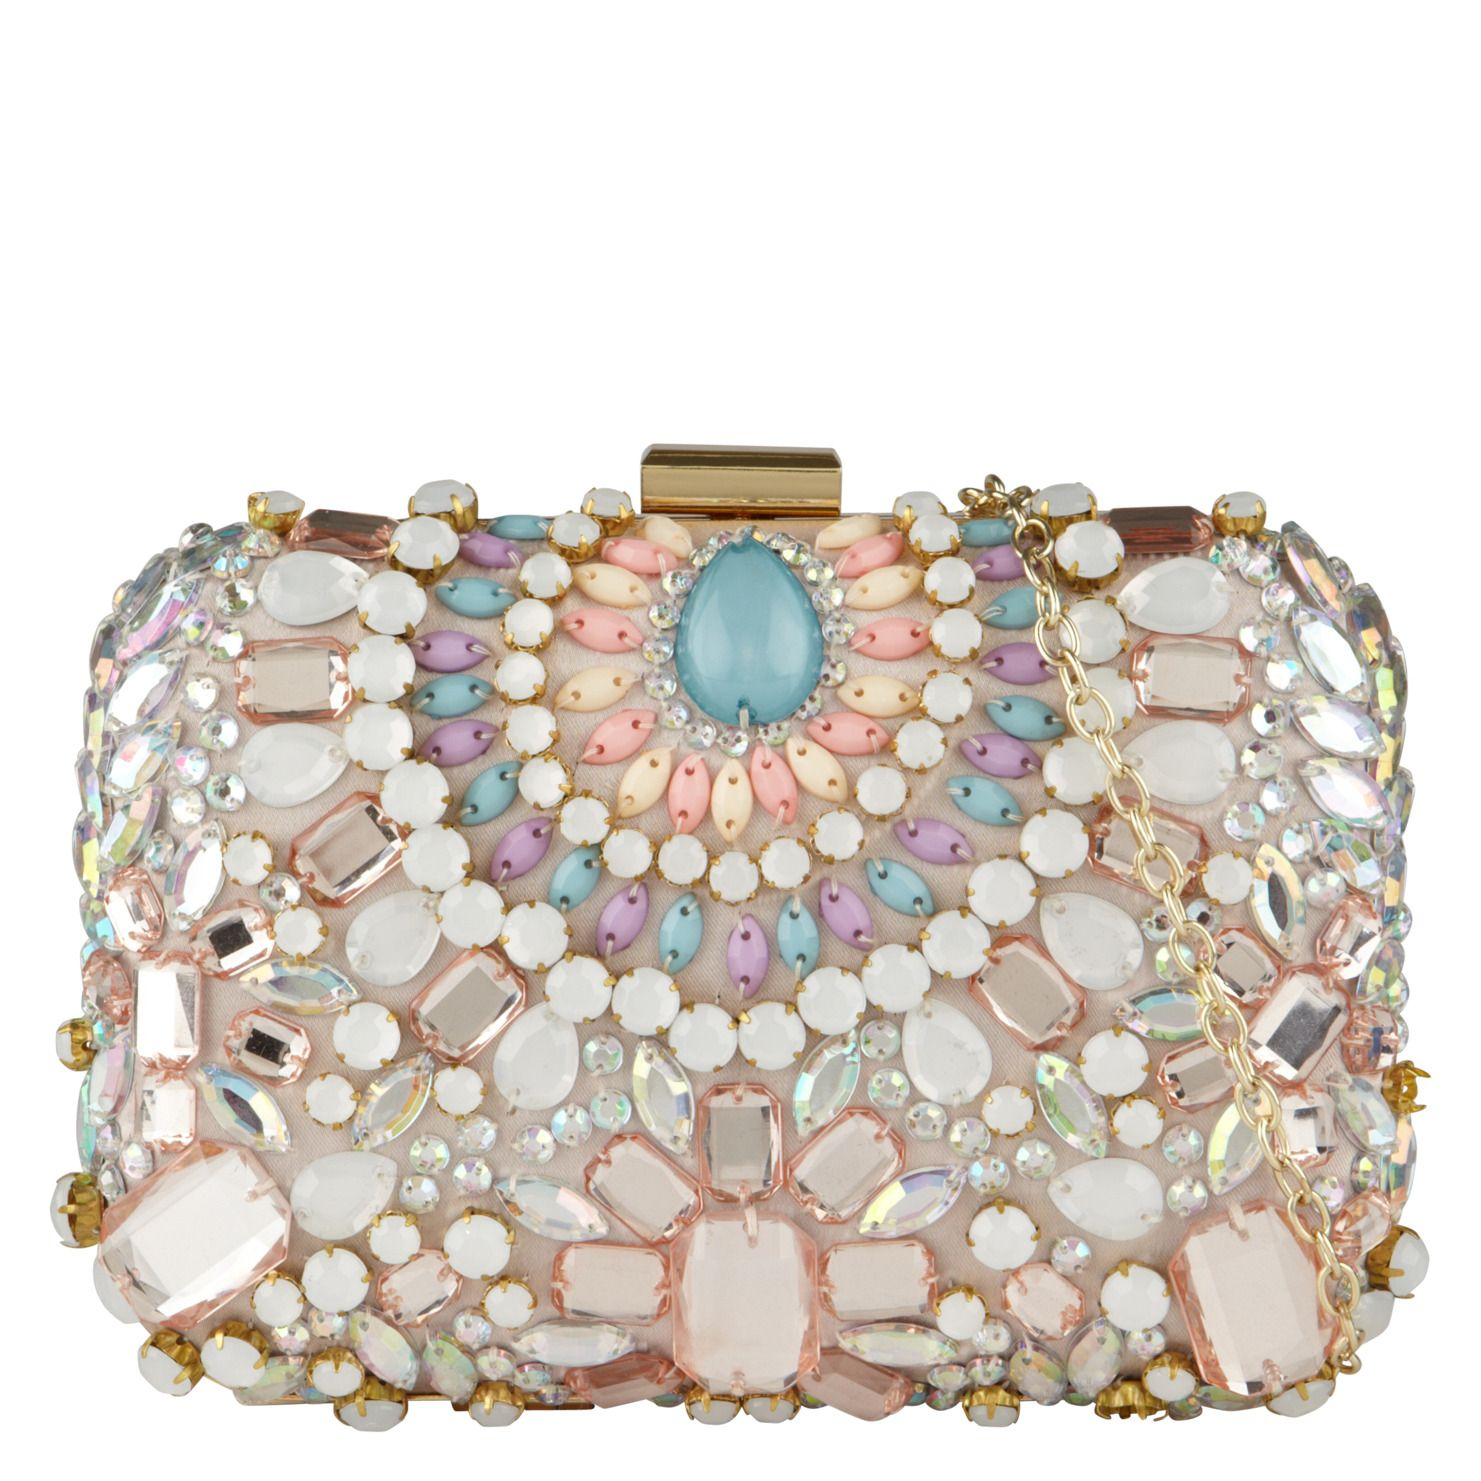 BIGHORSE - handbagss clutches & evening bags for sale at ALDO ...